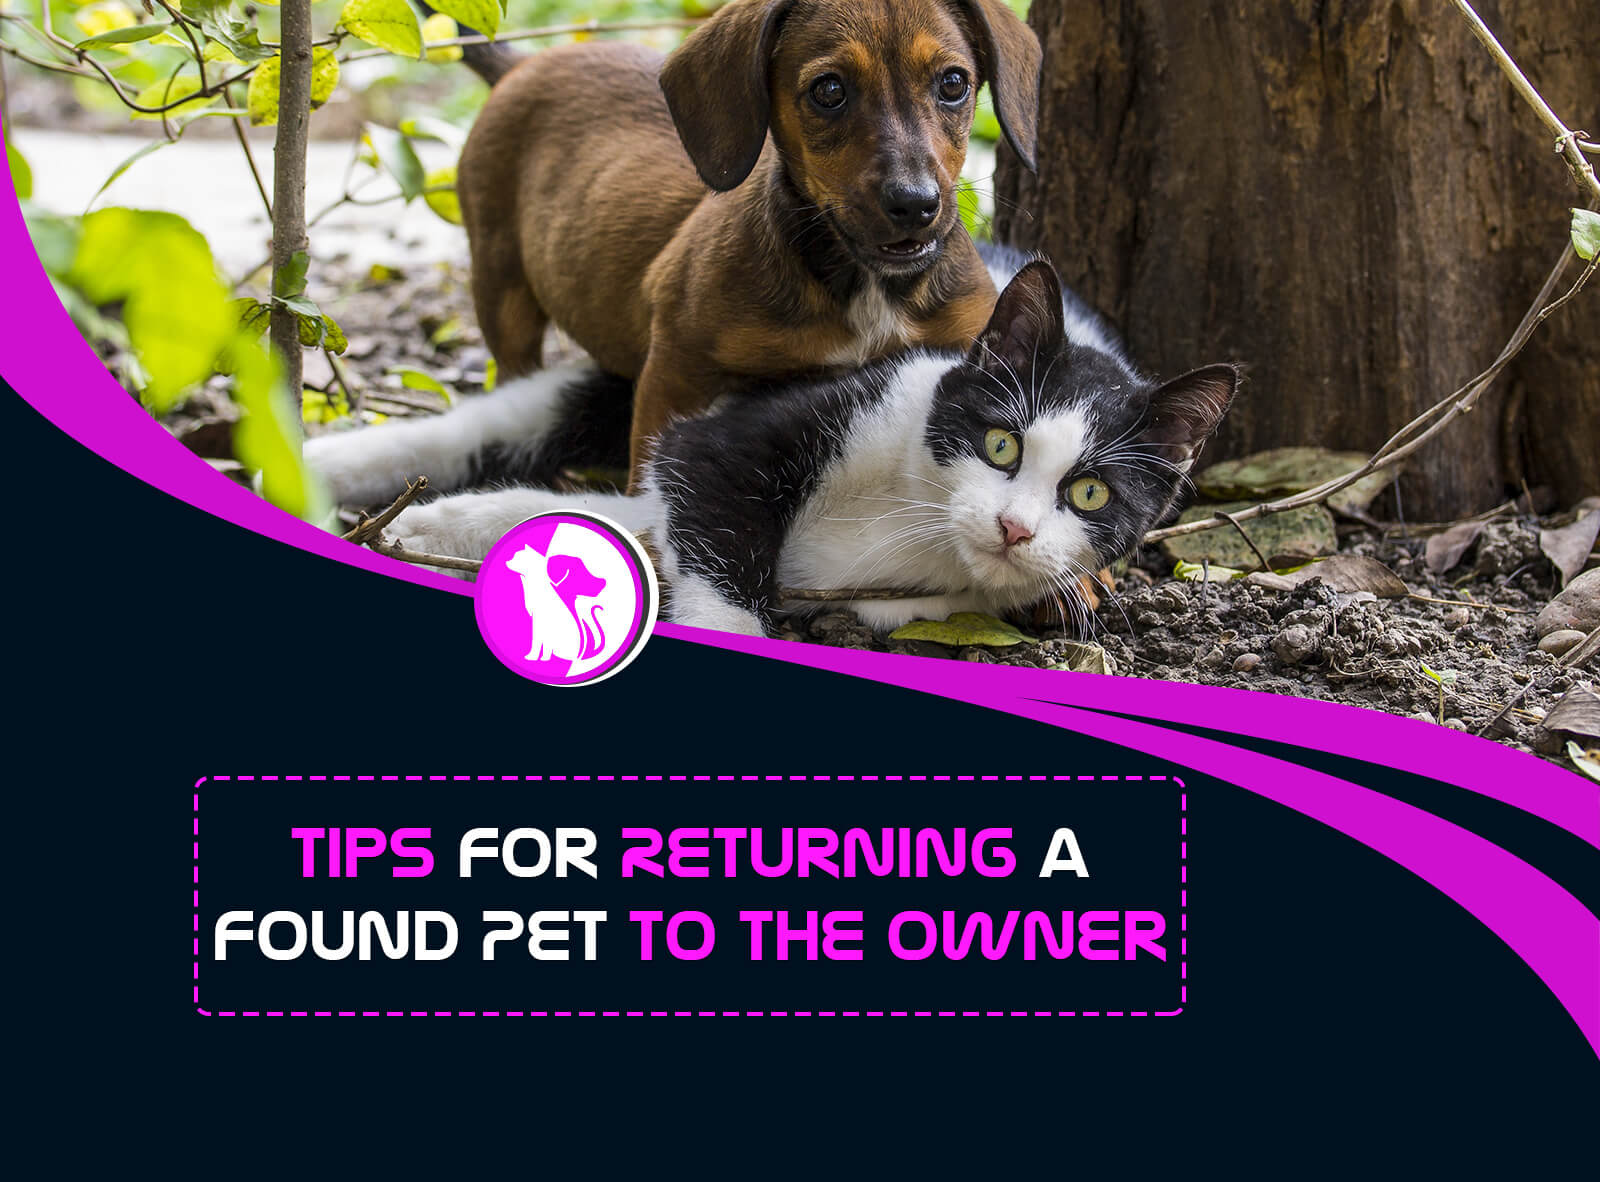 Tips for Returning a Found Pet to the Owner